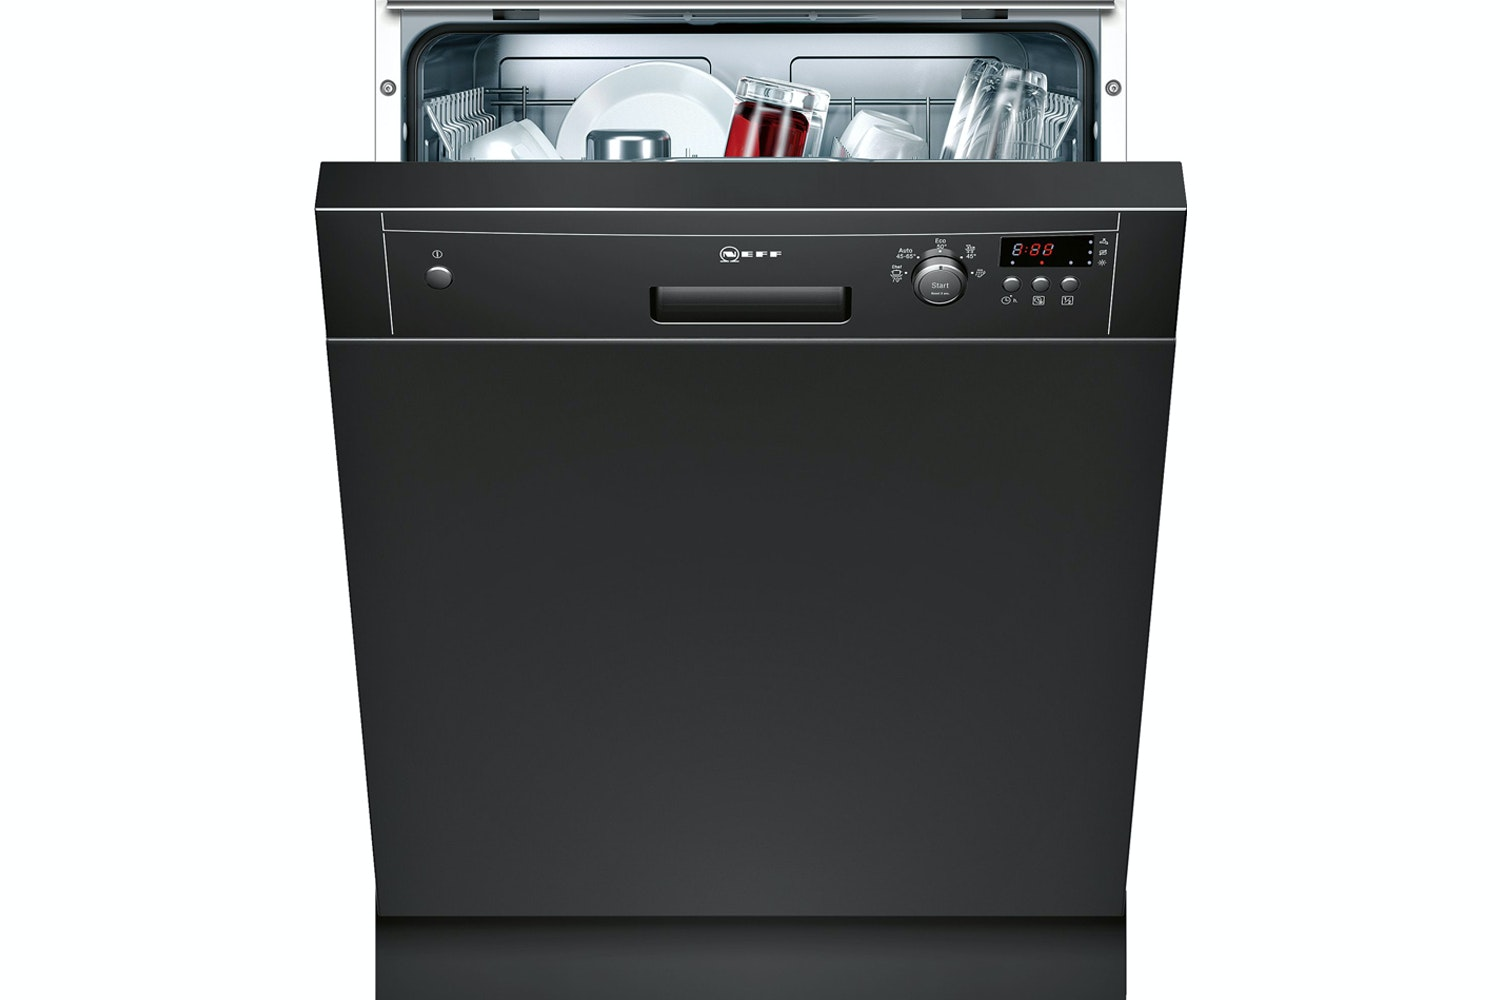 Neff Semi Integrated Dishwasher | 12 Place | S41E50S1GB